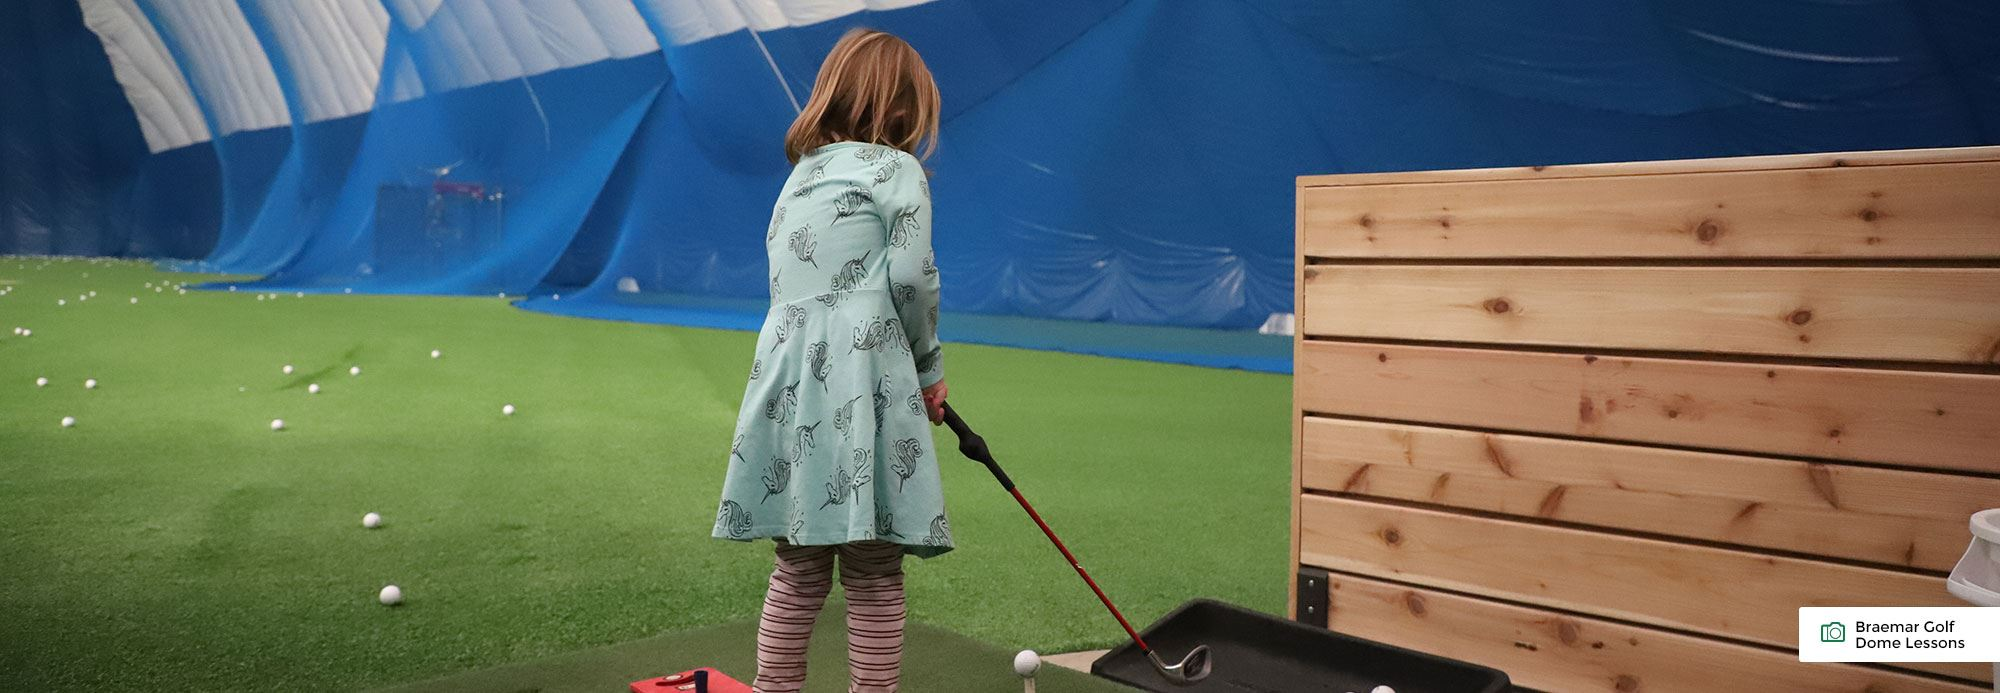 Braemar Golf Dome lessons for kids